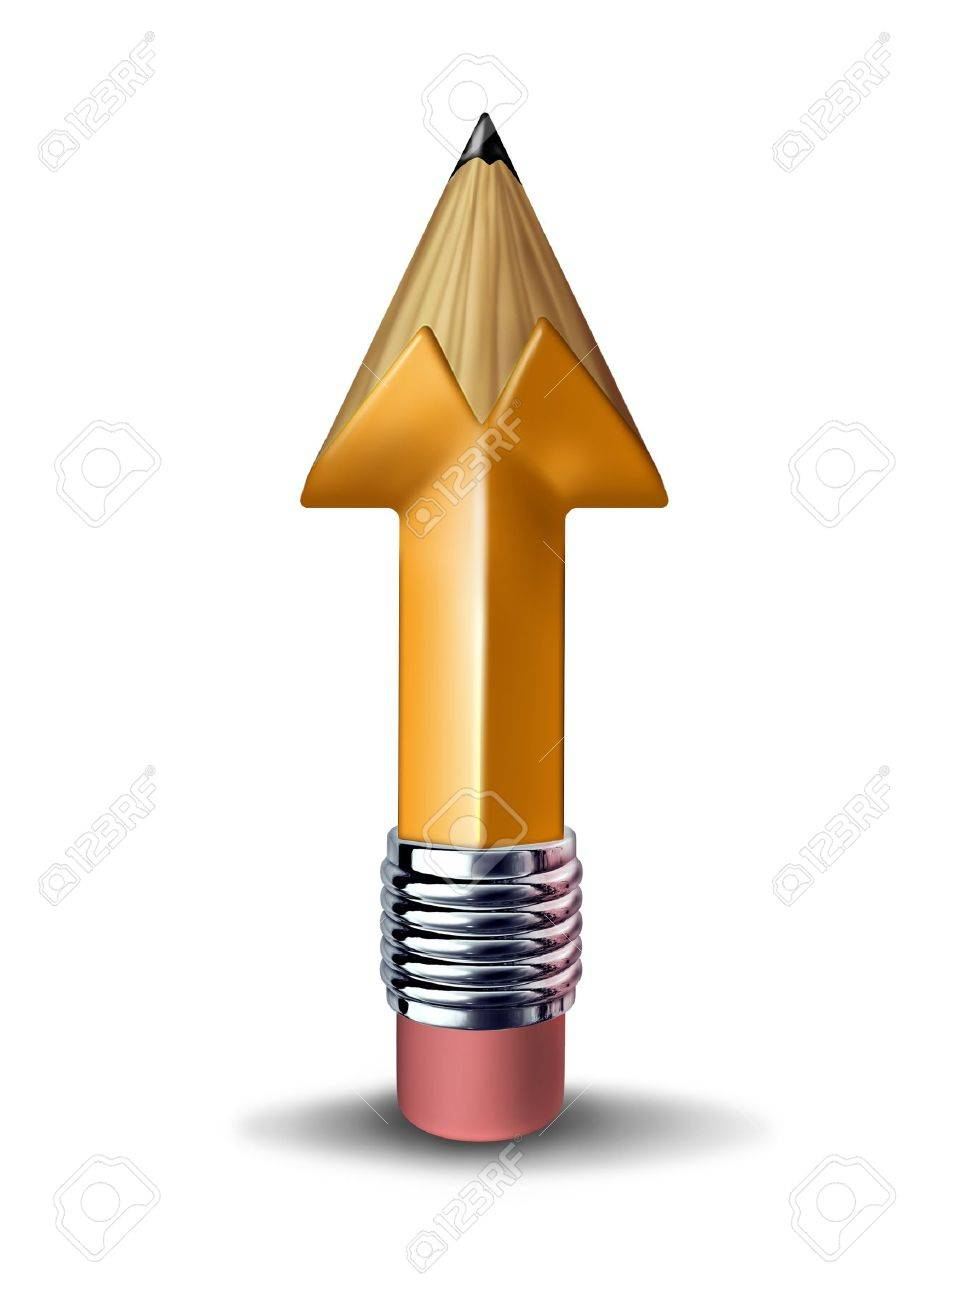 Education growth and training development for a successful career as a yellow pencil in the shape of an arrow going up on a white background Stock Photo - 15725765